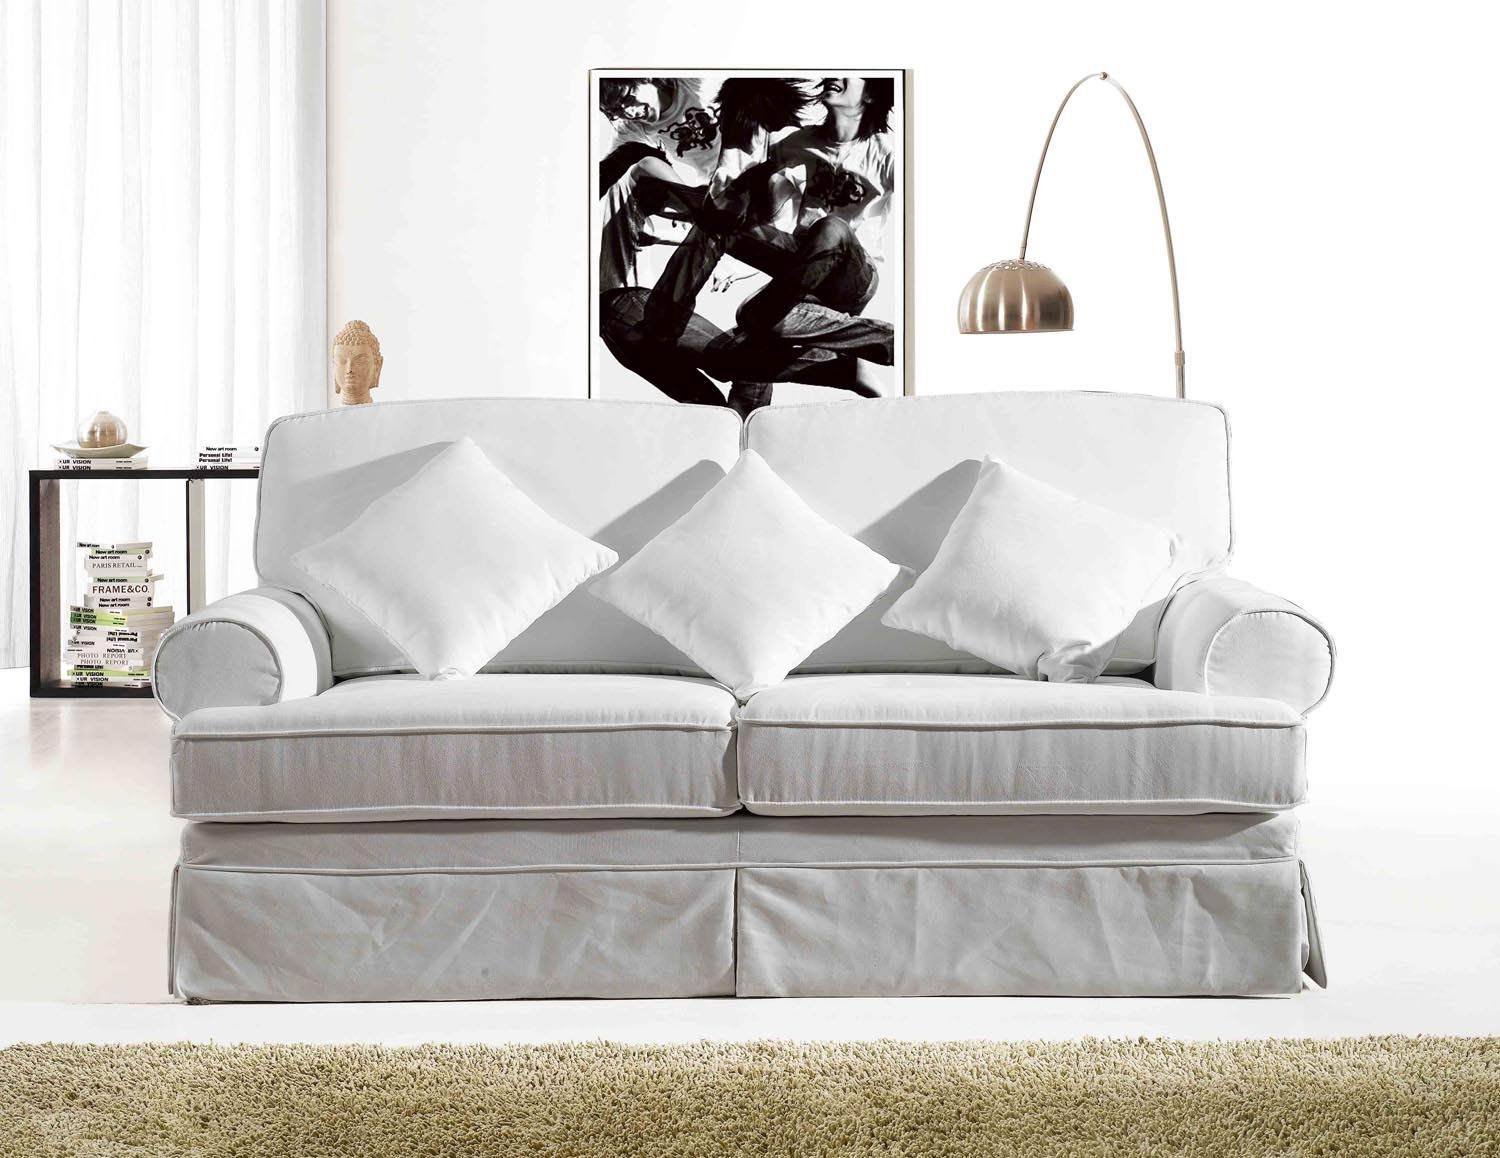 Sof S Da Tela Yx4 A070 Sof S Da Tela Yx4 A070 Fornecido Por Allfurn Furniture Group Co